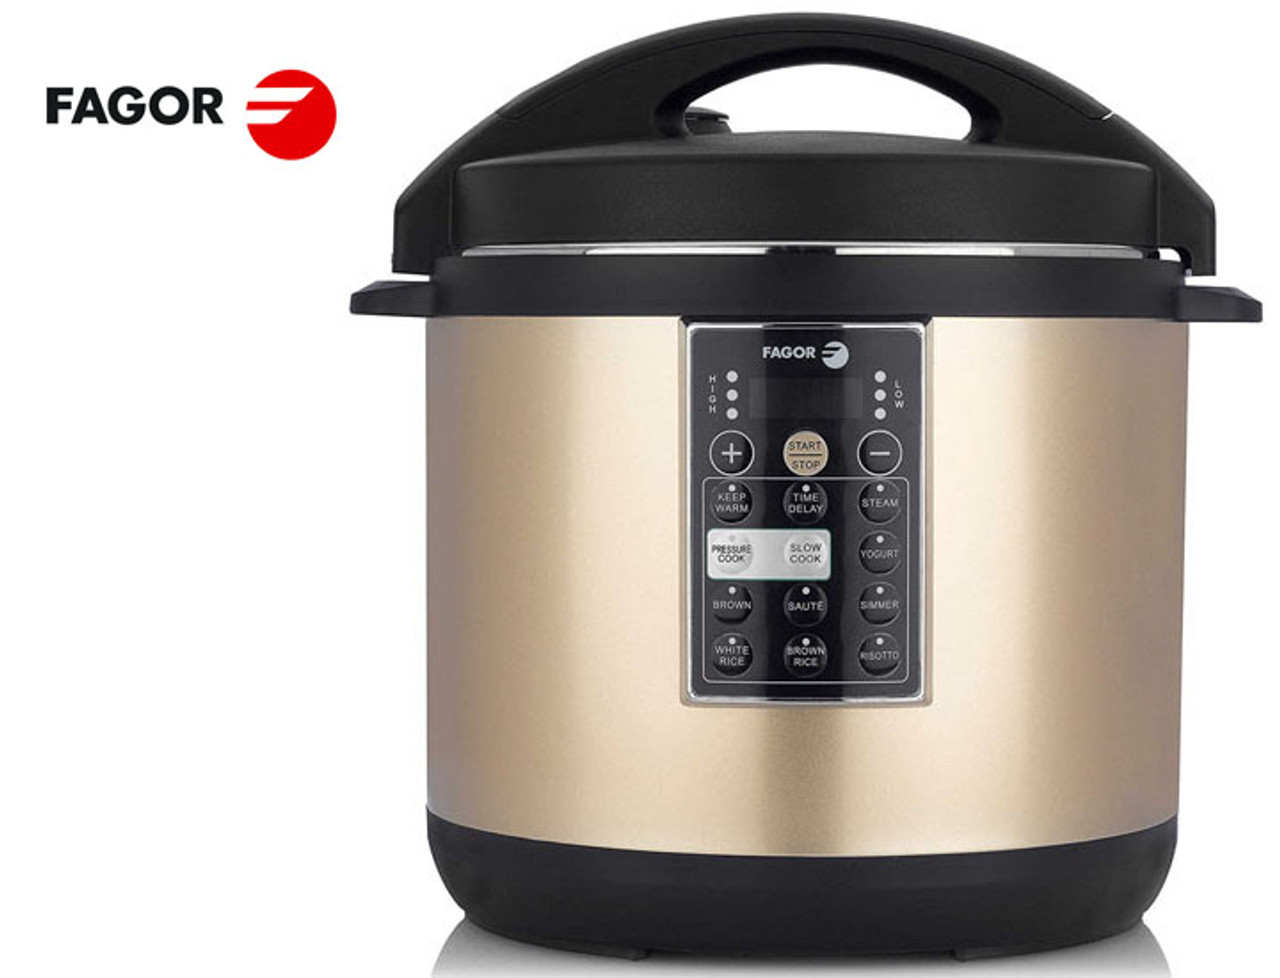 Fagor Versa Lux 8-Qt. 8-in-1 Electric Multicooker